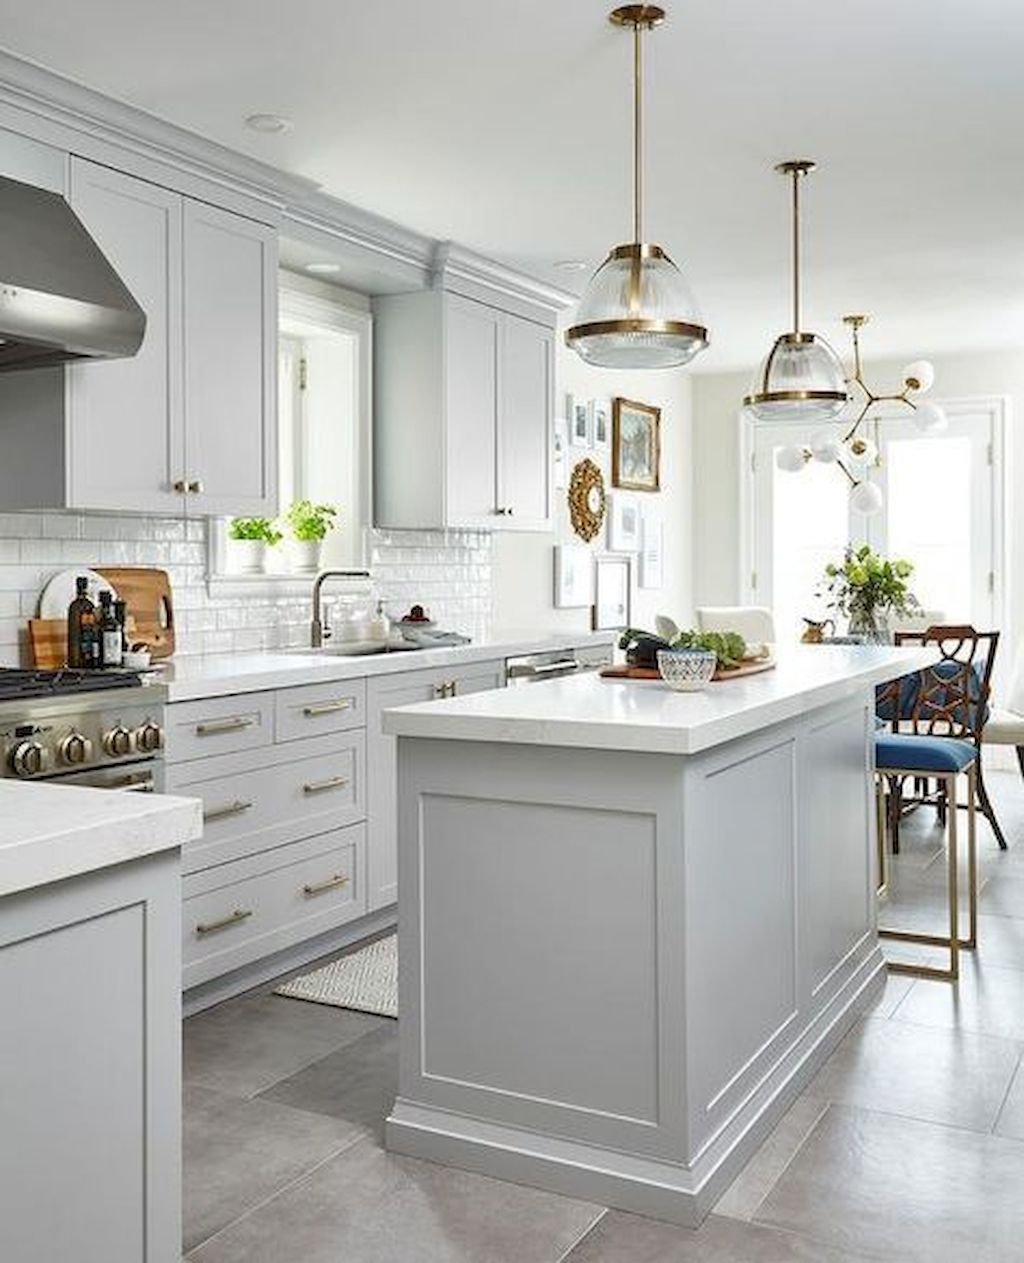 28 Elegant White Kitchen Design Ideas For Modern Home Kitchen